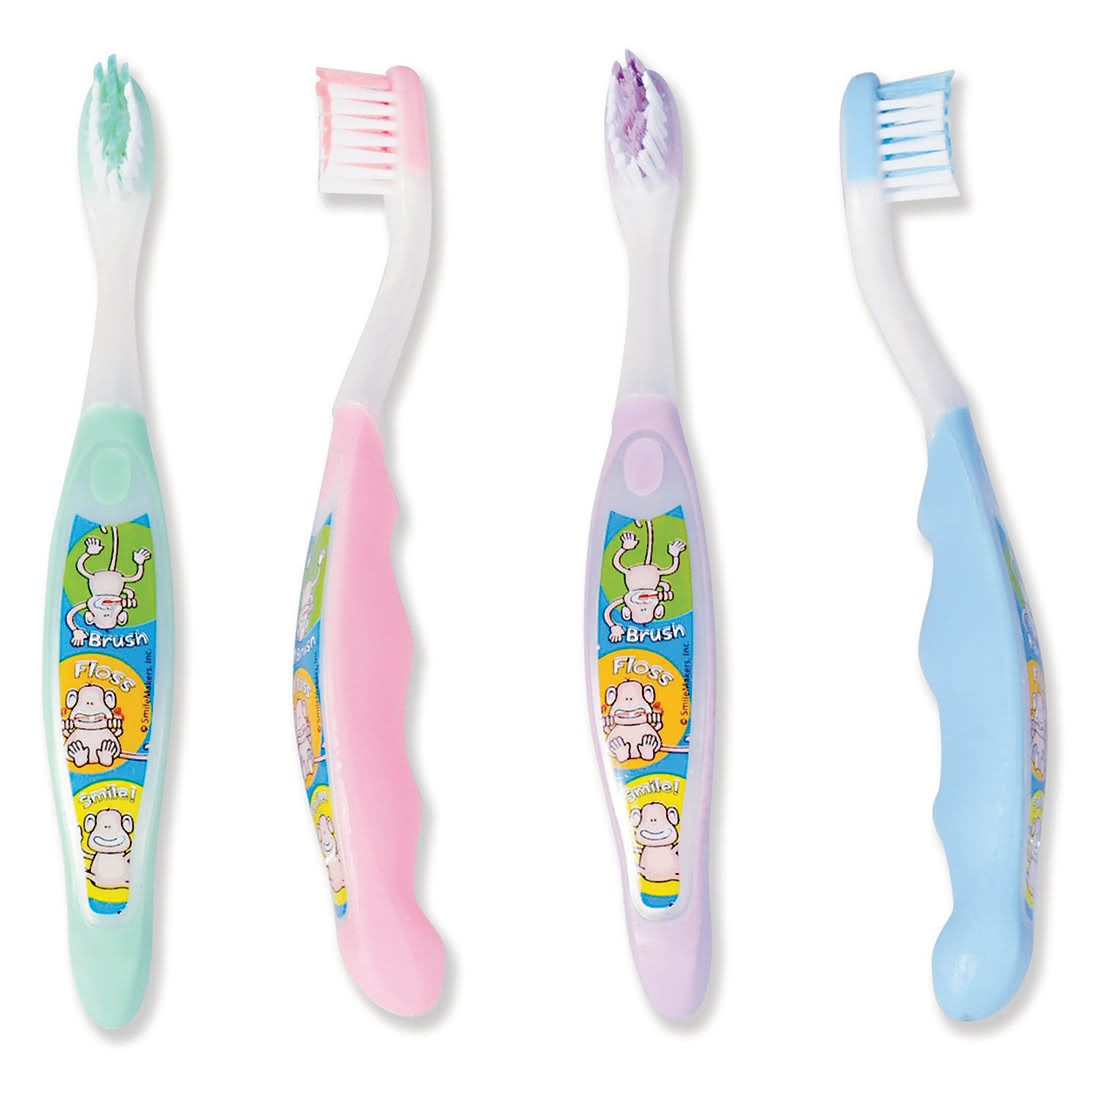 SmileCare Toddler Brush, Floss, Smile Monkey Toothbrushes [image]